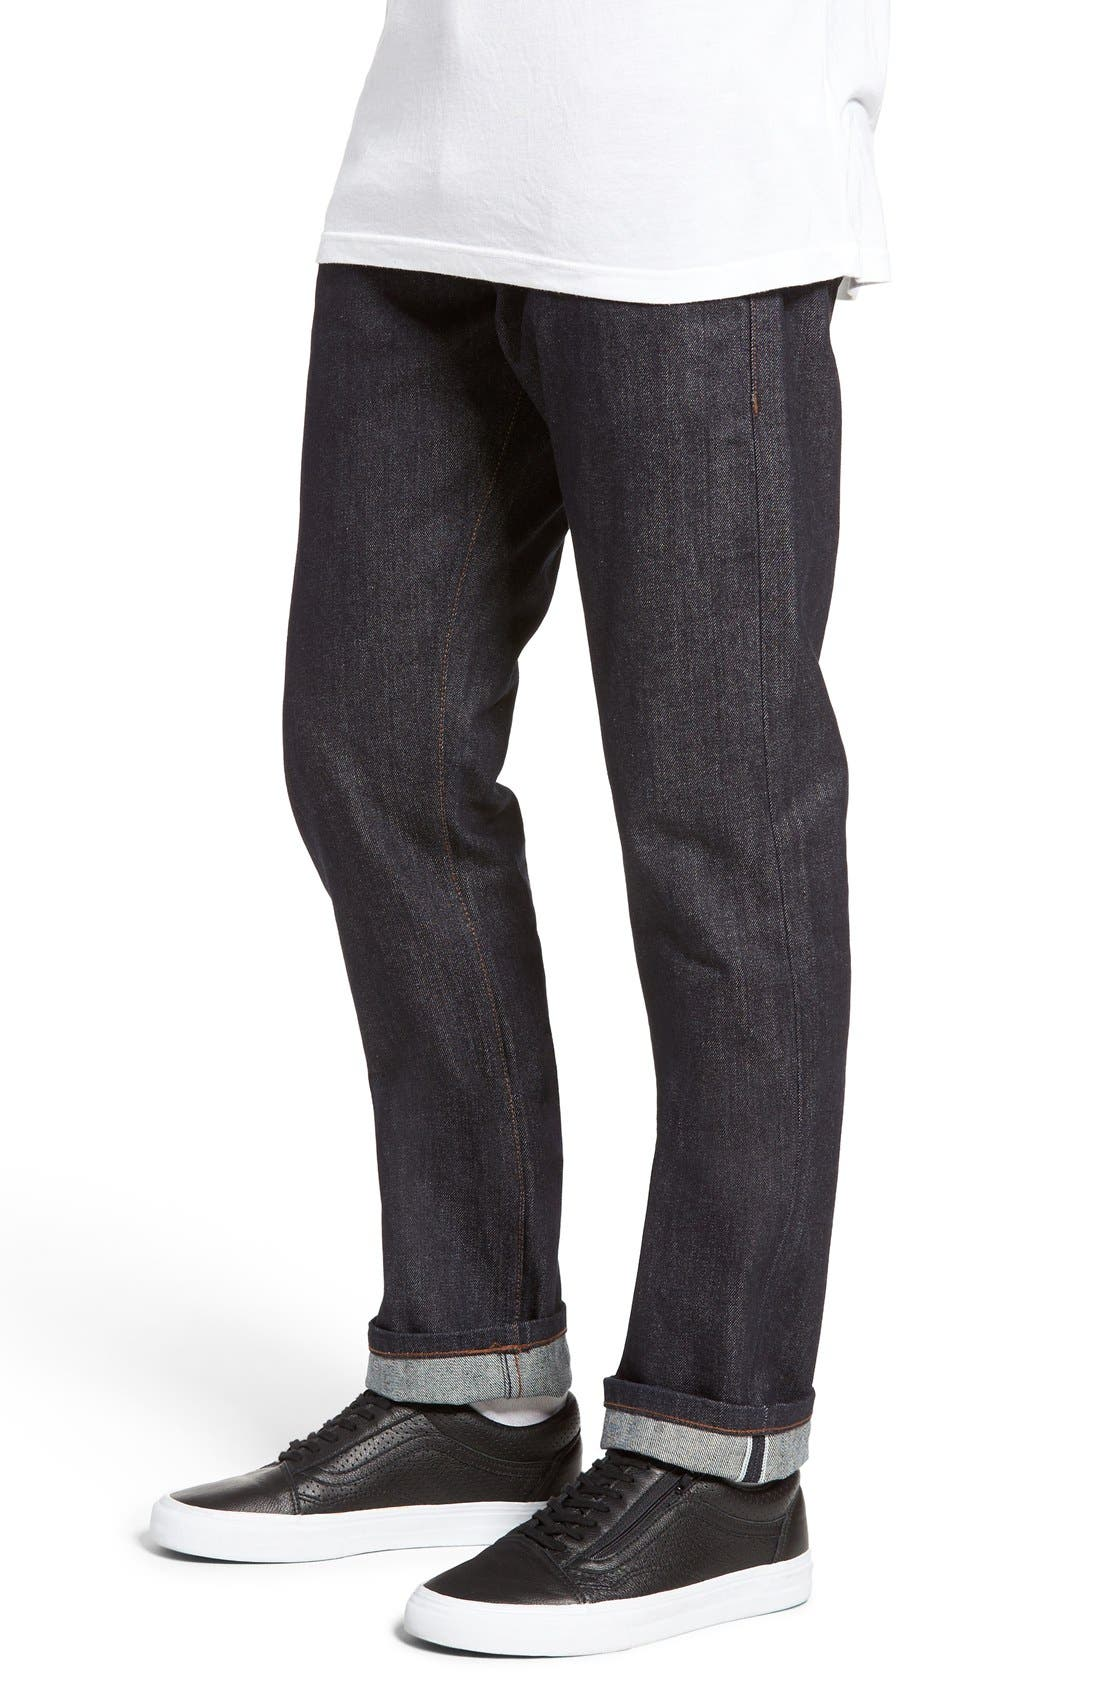 UB201 Tapered Fit Raw Selvedge Jeans,                             Alternate thumbnail 12, color,                             INDIGO